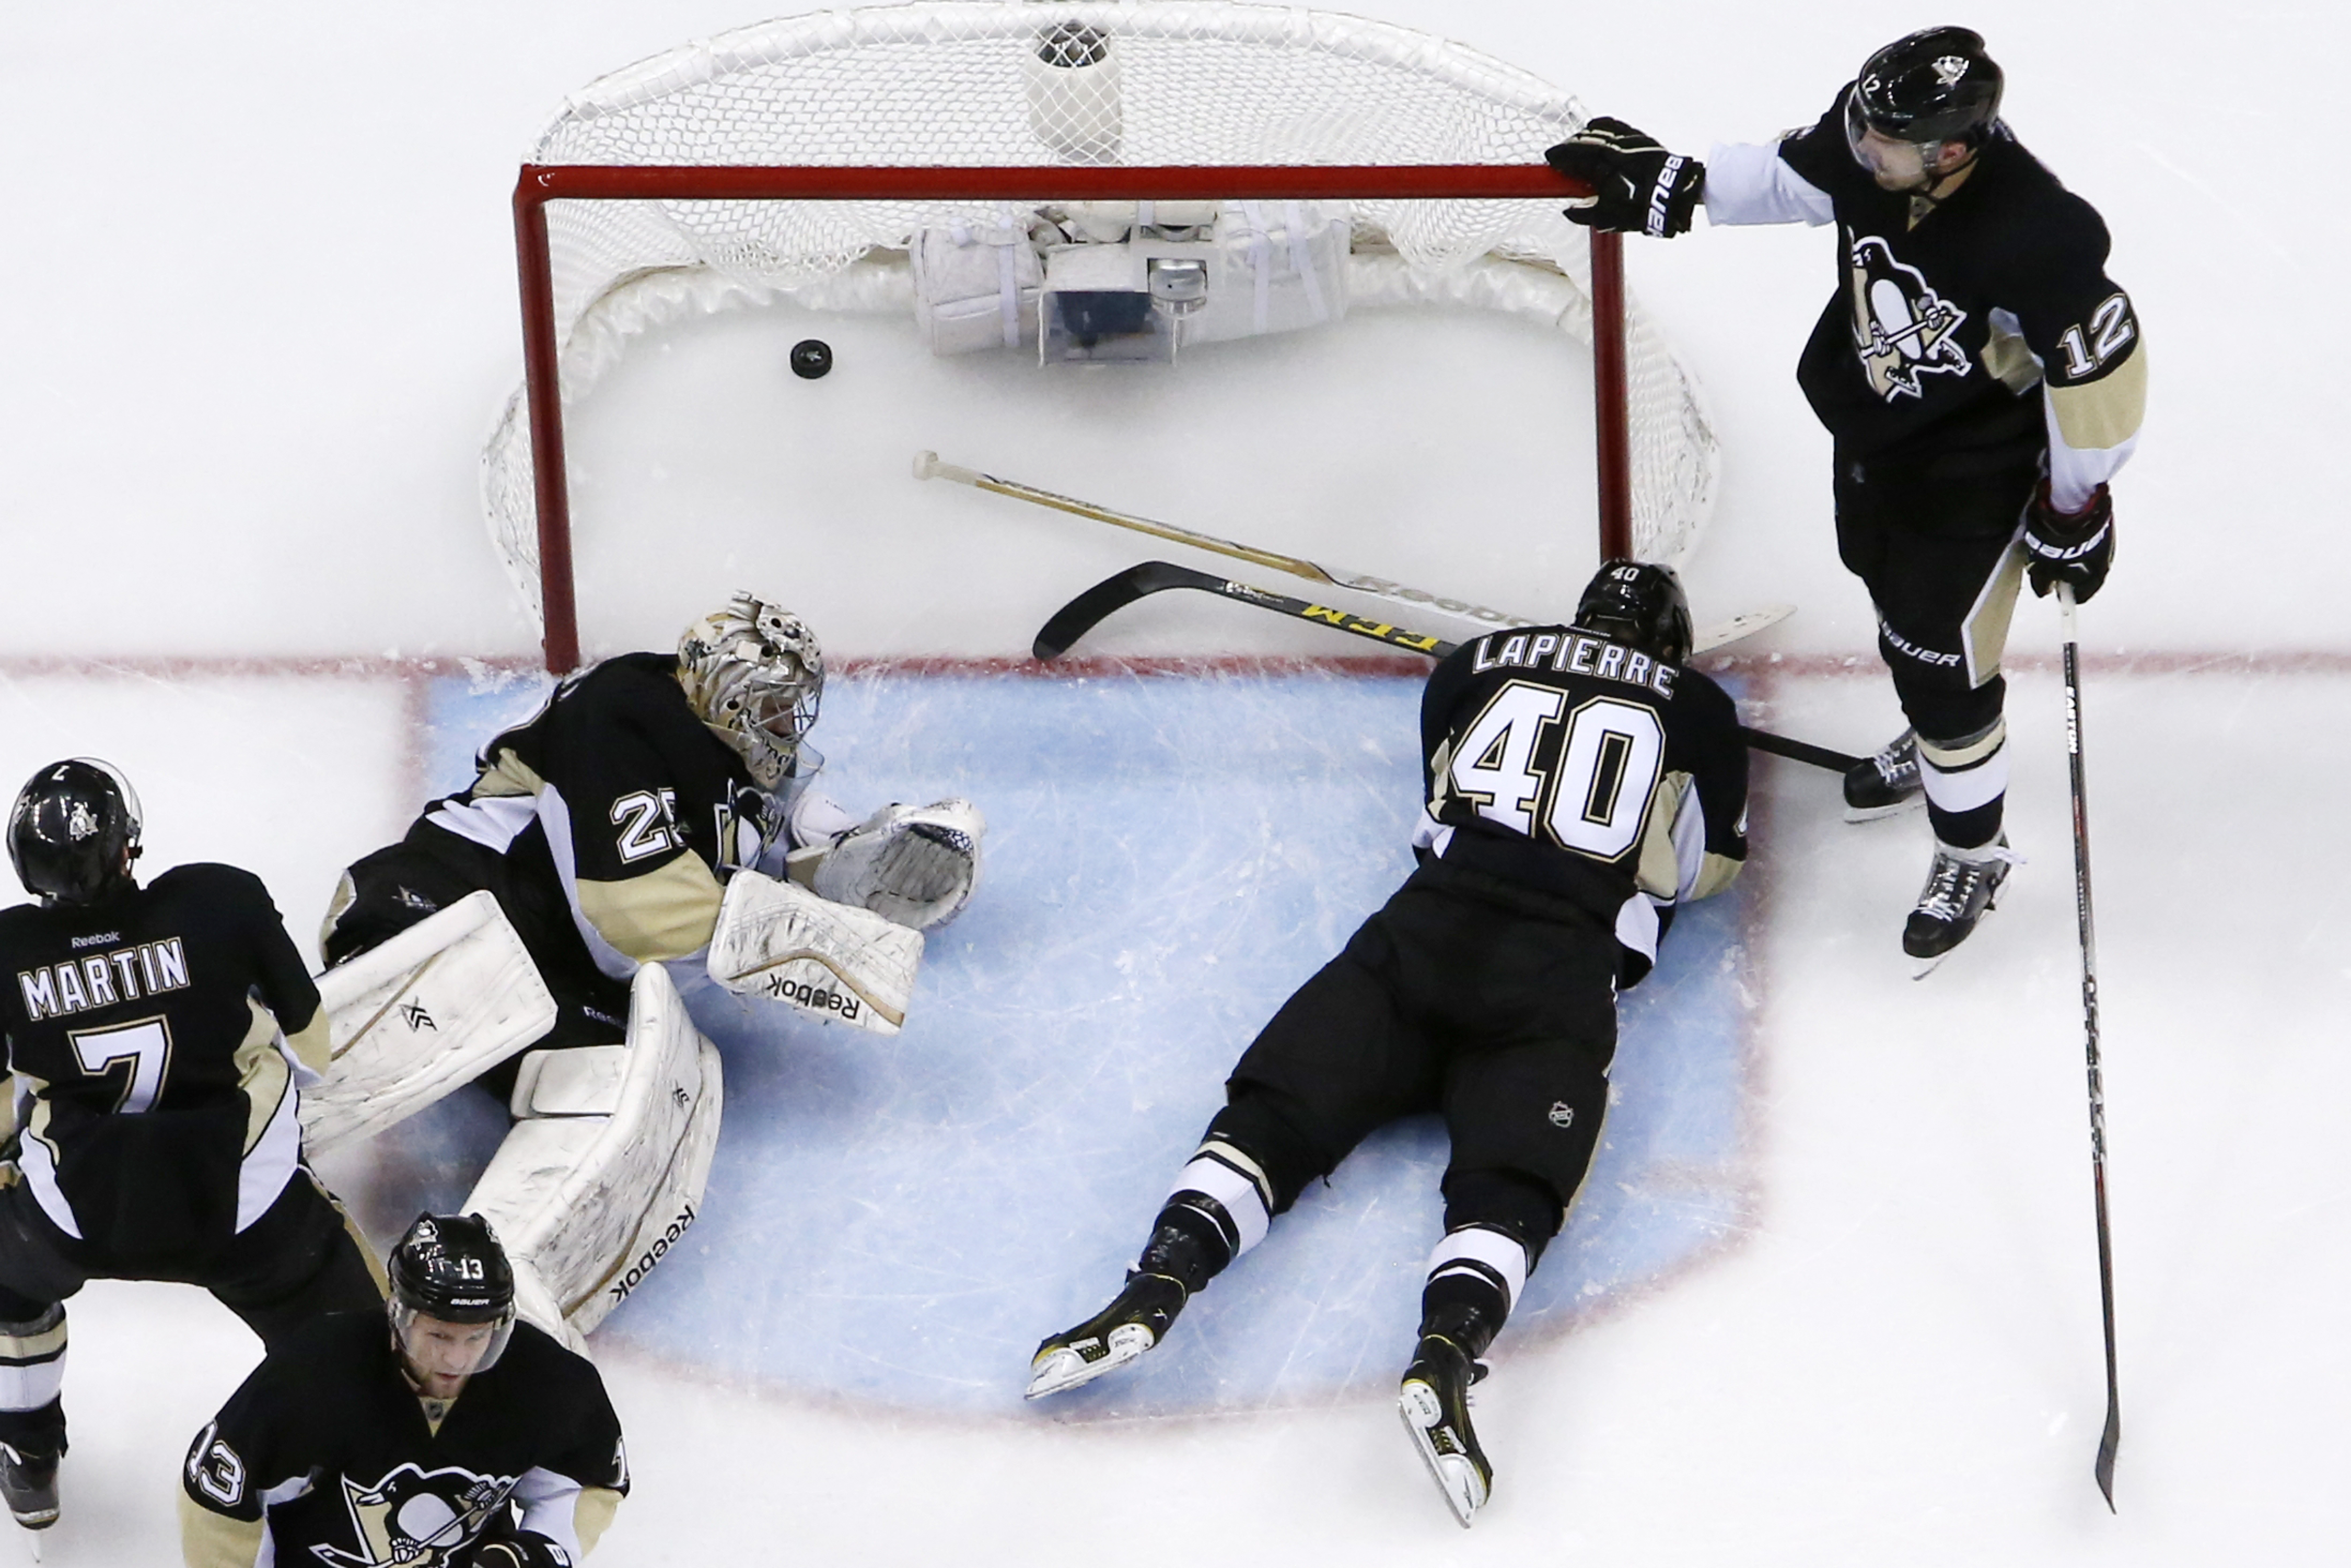 Pittsburgh Penguins goalie Marc-Andre Fleury (29) and Maxim Lapierre (40) lie in the goal crease with the overtime goal by New York Rangers' Kevin Hayes (13) in the net in overtime of a first-round NHL playoff hockey game in Pittsburgh on Wednesday, April